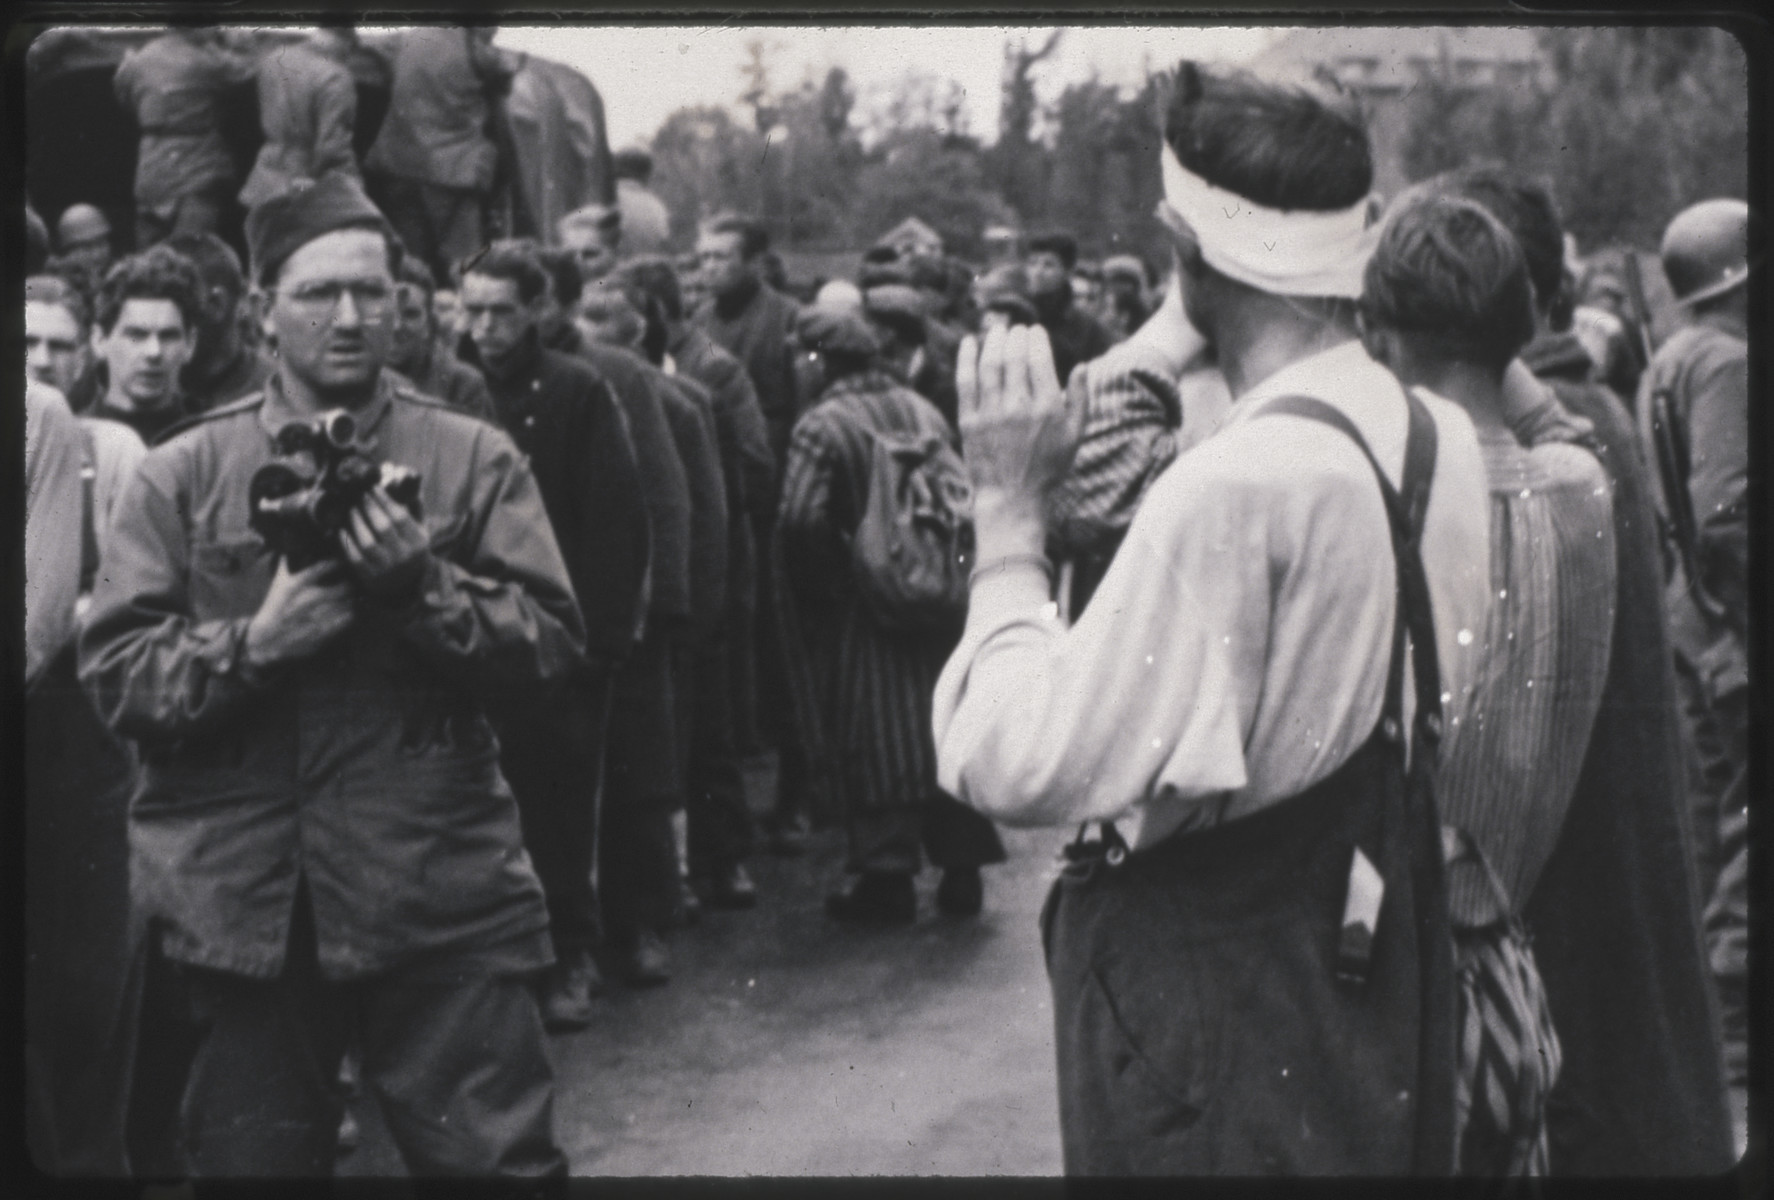 Philip Drell takes photograhs of the surrender of Dachau camp guards while liberated prisoners look on.